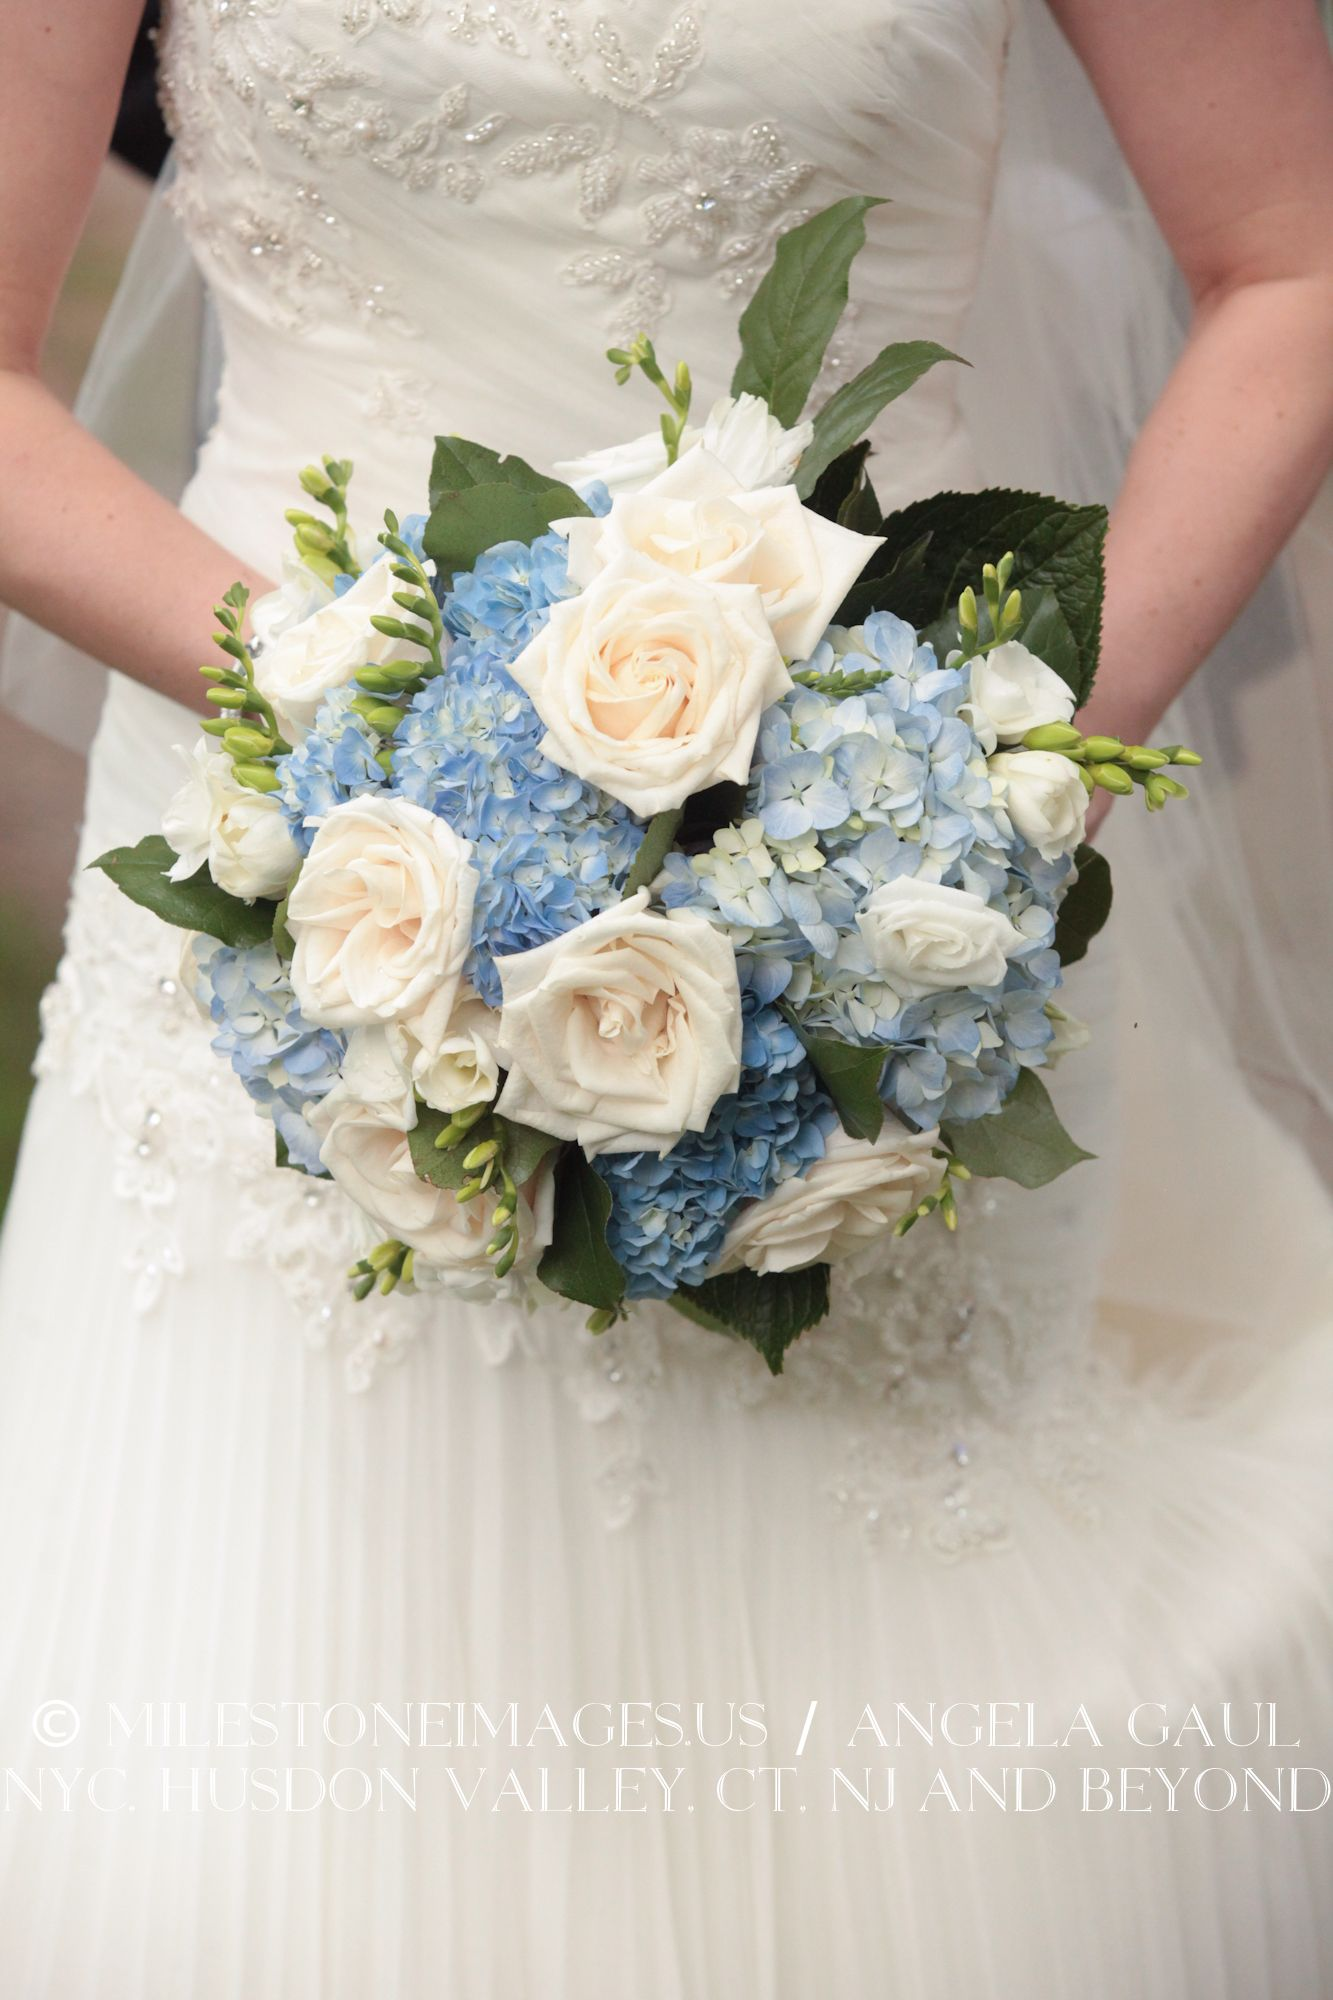 Pin By Angela Gaul On Real Wedding Bouquets And Boutonnieres Flower Bouquet Wedding Blue Wedding Flowers Bridal Bouquet Blue